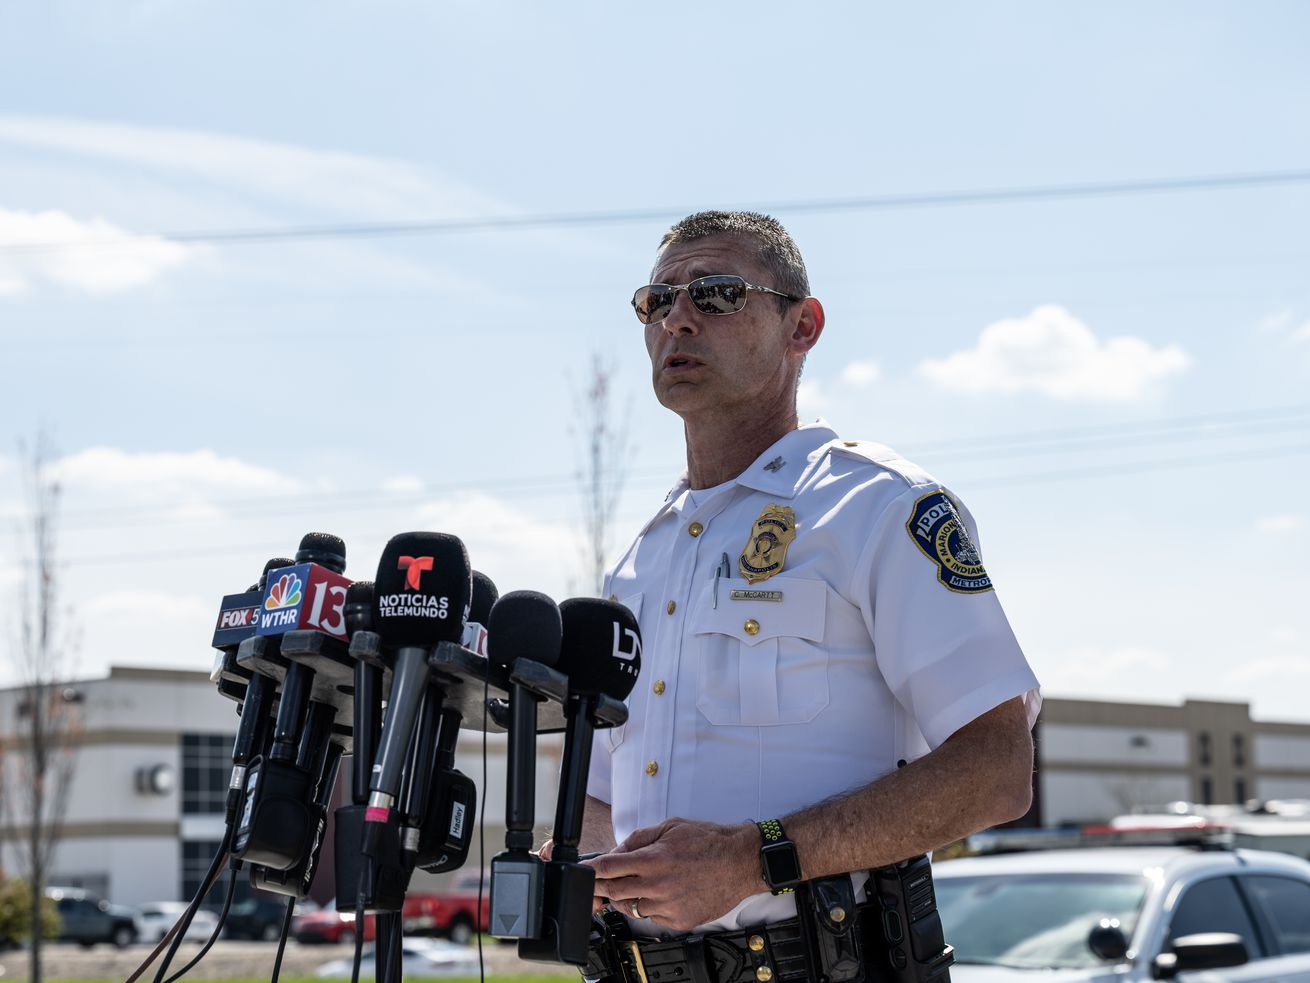 Deputy Chief Craig McCartt of the Indianapolis Metropolitan Police Department address the media with an update near the crime scene of the FedEx Ground facility on April 16, 2021 in Indianapolis, Indiana.